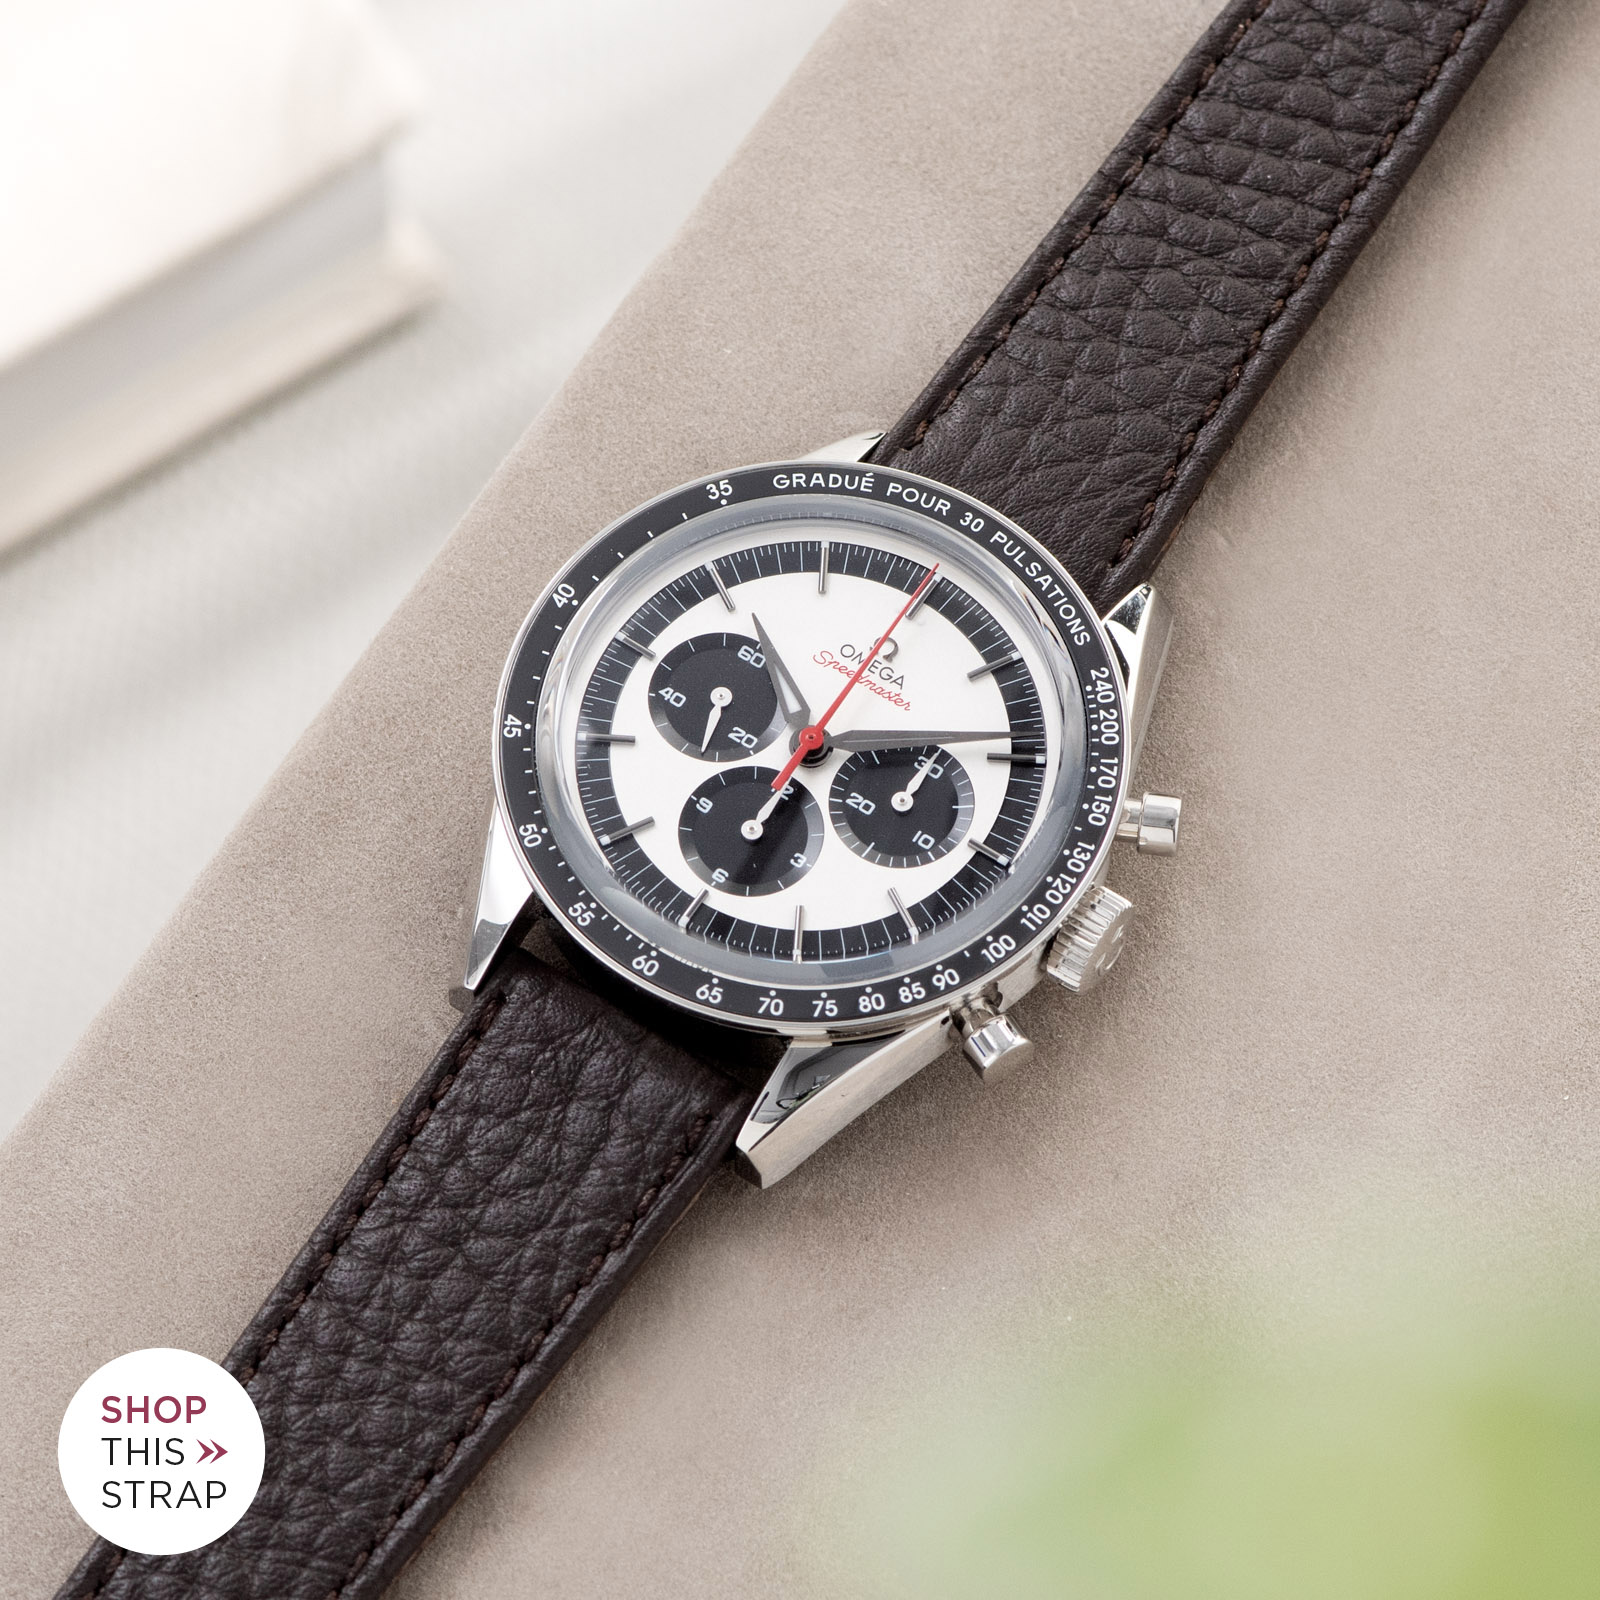 Bulang and Sons_Strap Guide_Omega Speedmaster 2998_Taurillon Dark Brown Speedy Leather Watch Strap